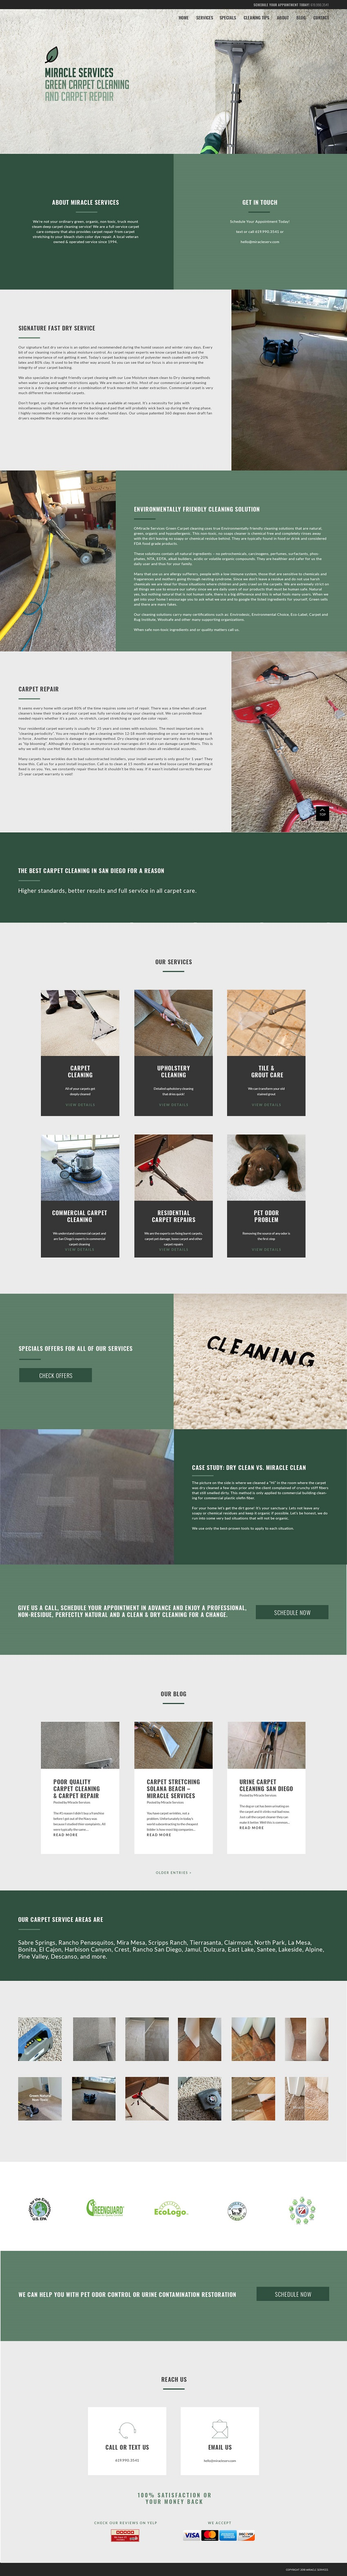 Image of Miracle Services website design